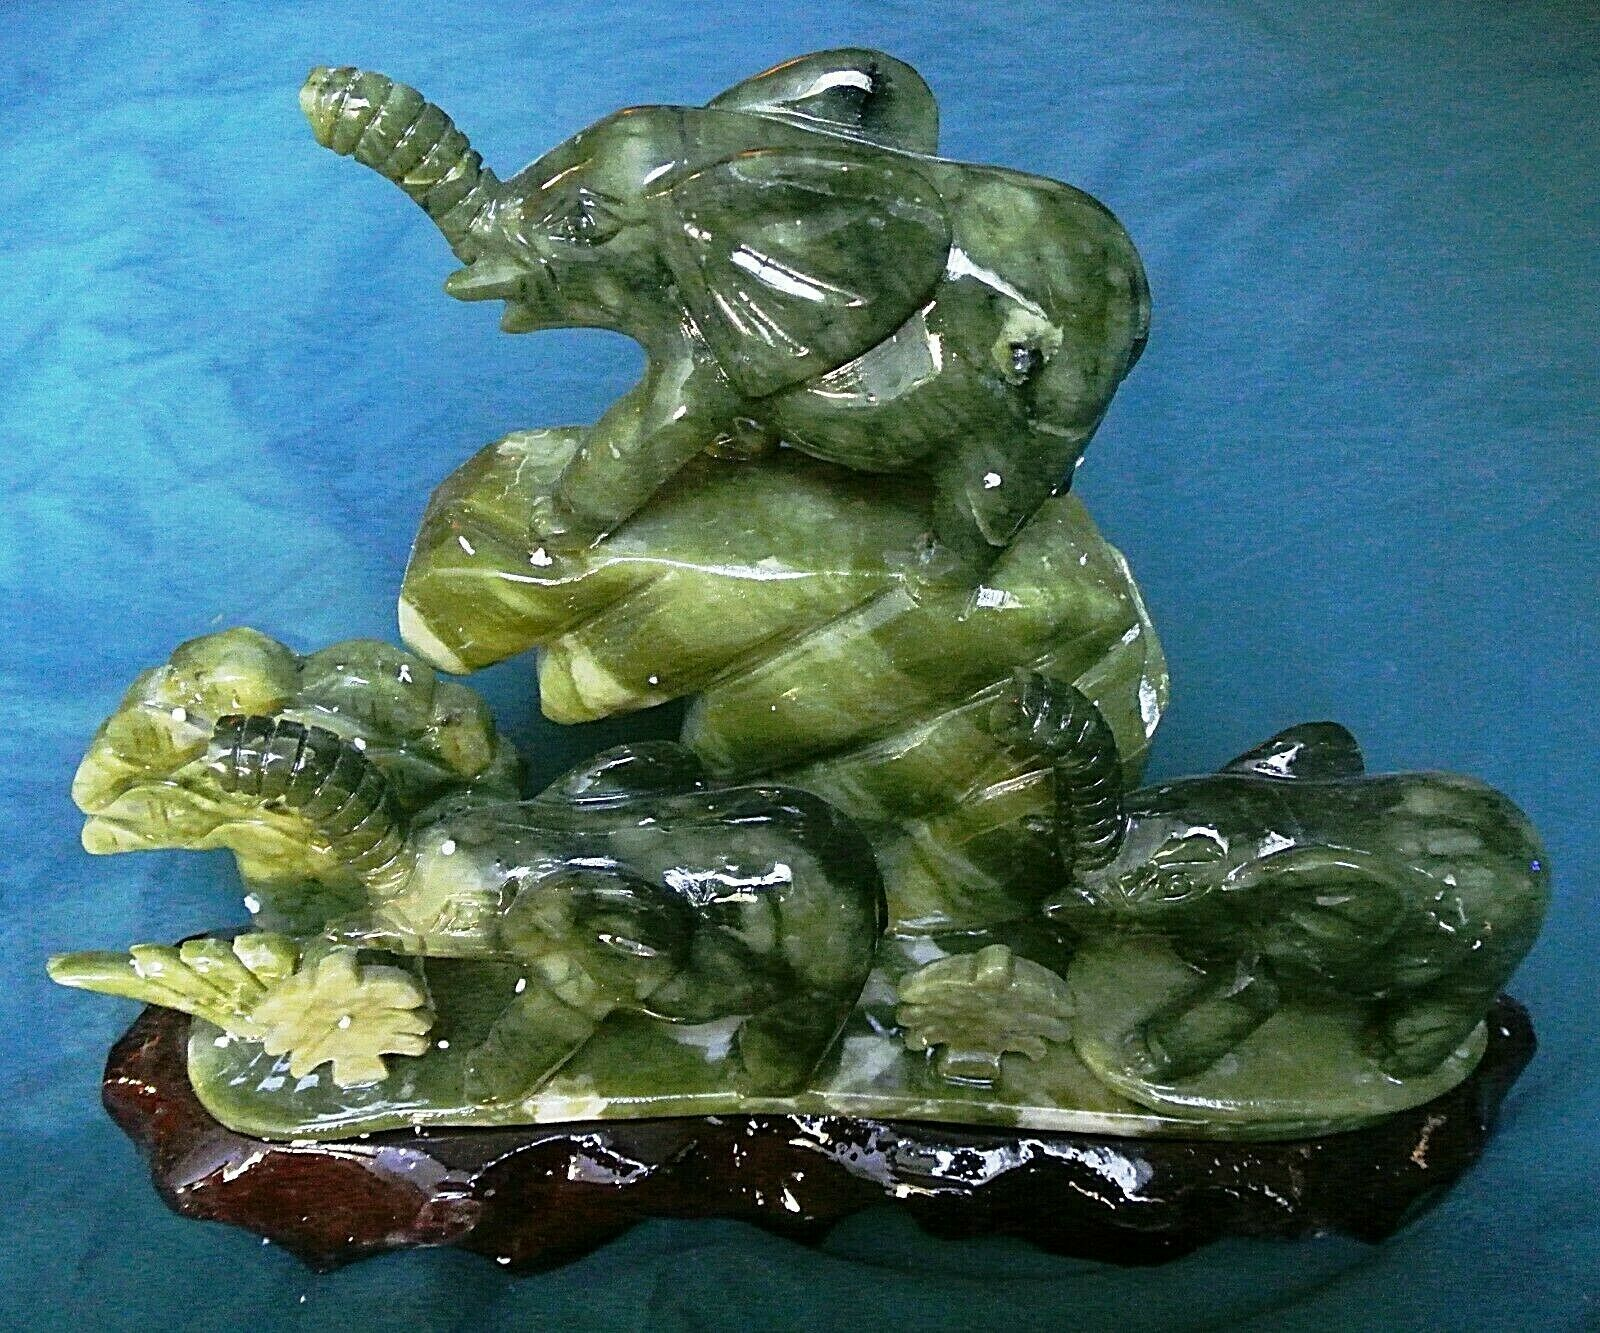 Primary image for Three Lucky Elephants Mountain/Real Green Jade/2,230 Ct Total Weight/List $1,200